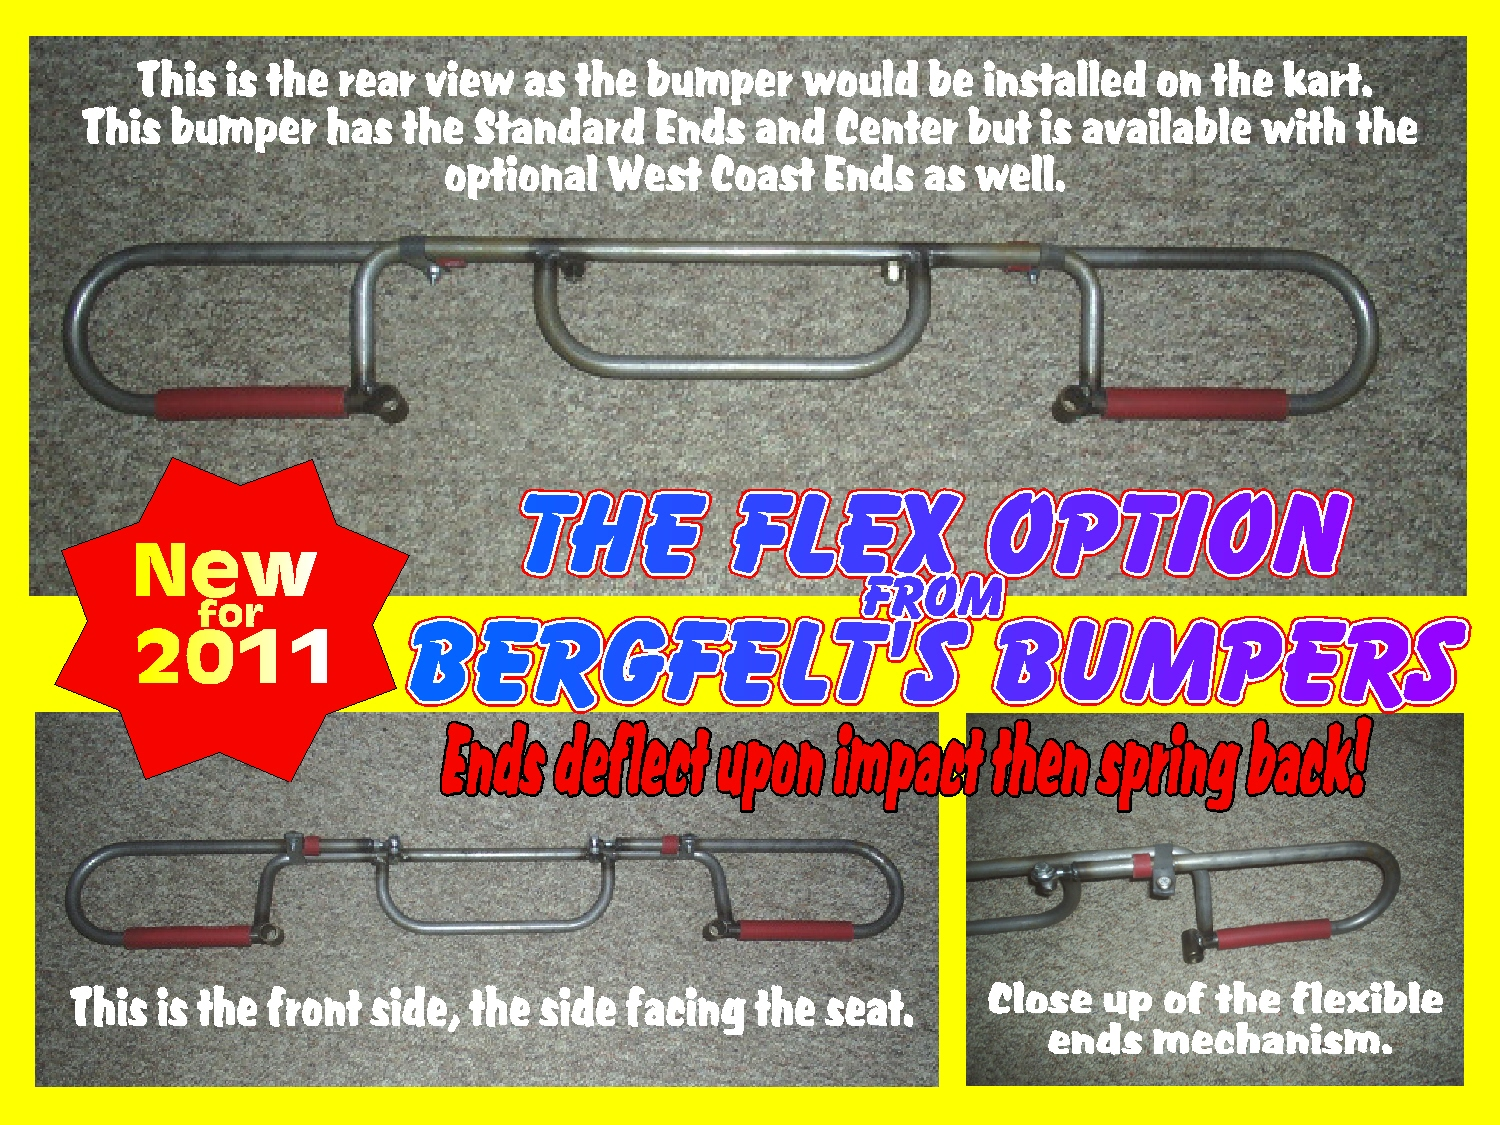 flex option